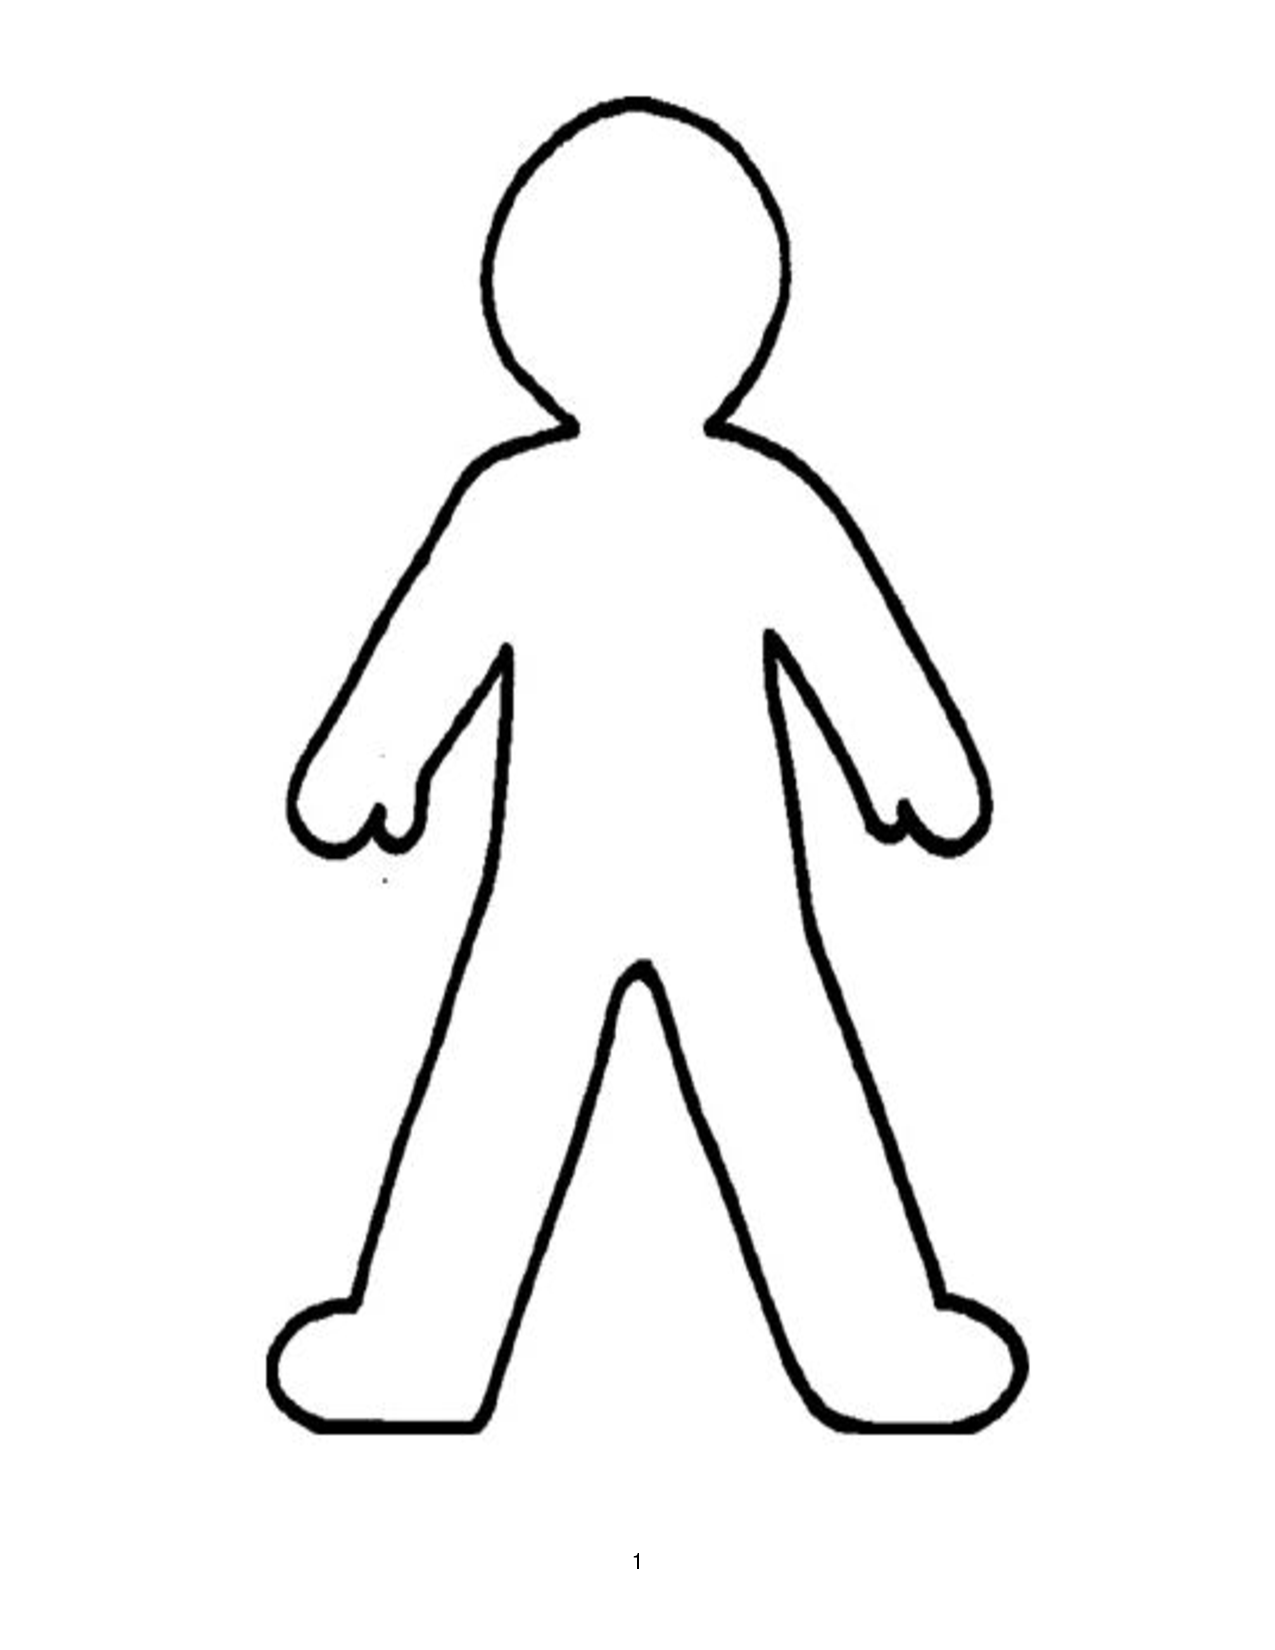 Shoulder clipart body outline ClipArt Download silhouettes The OutlineBody